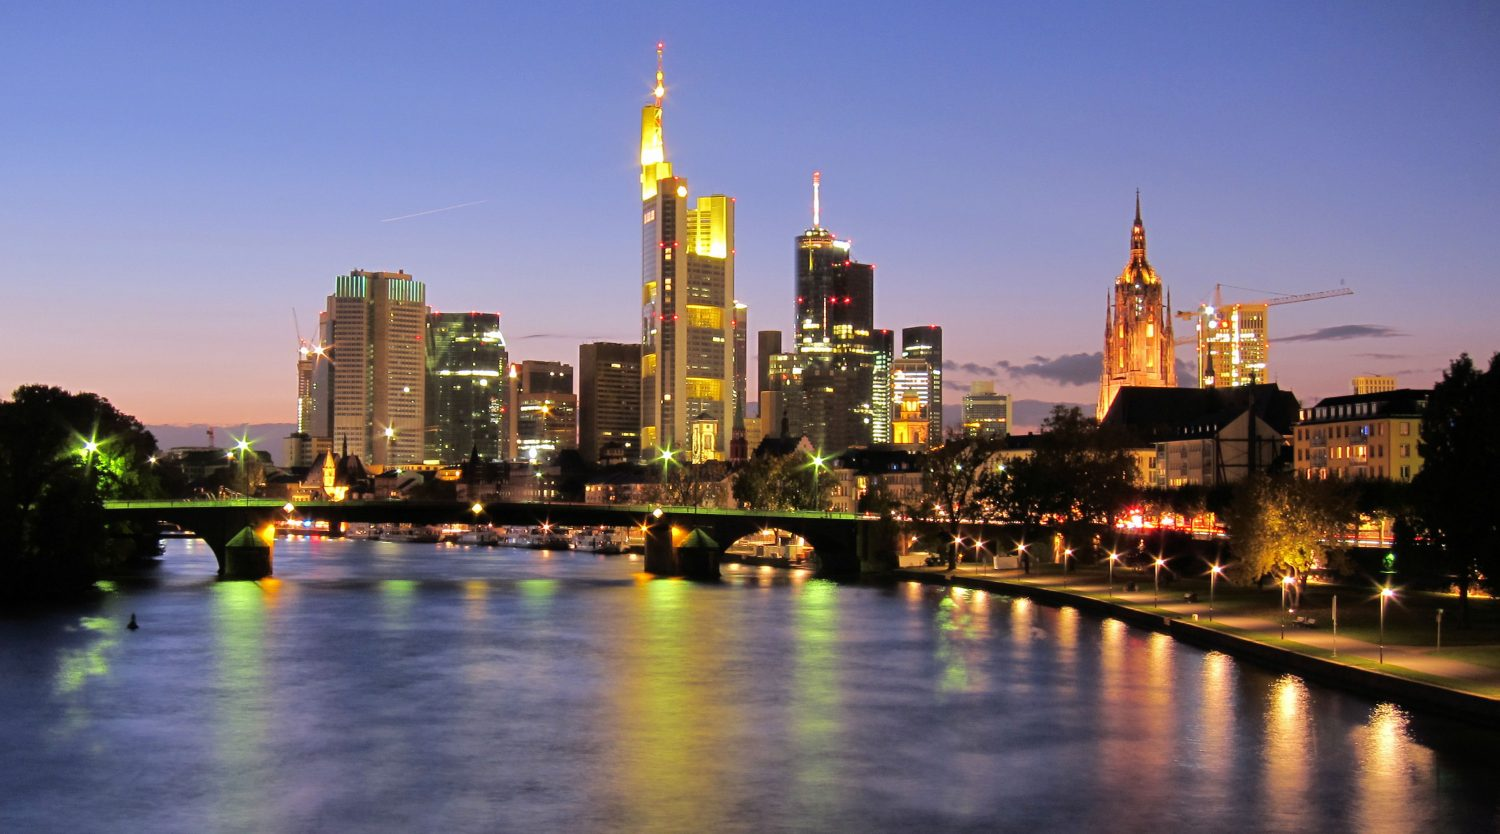 Billige Hotels In Frankfurt